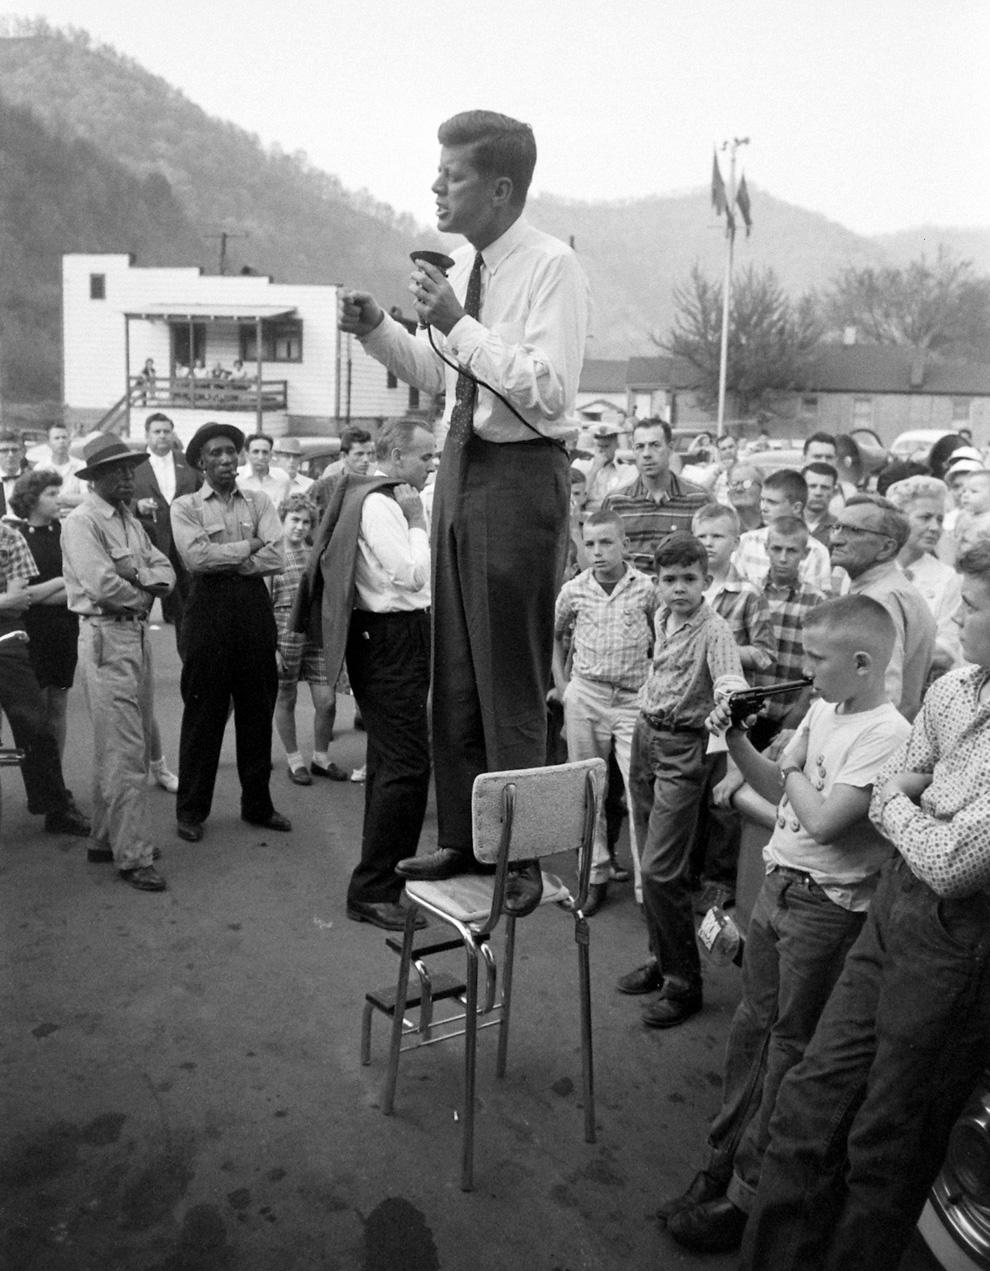 JFK on kitchen stool addressing crowd